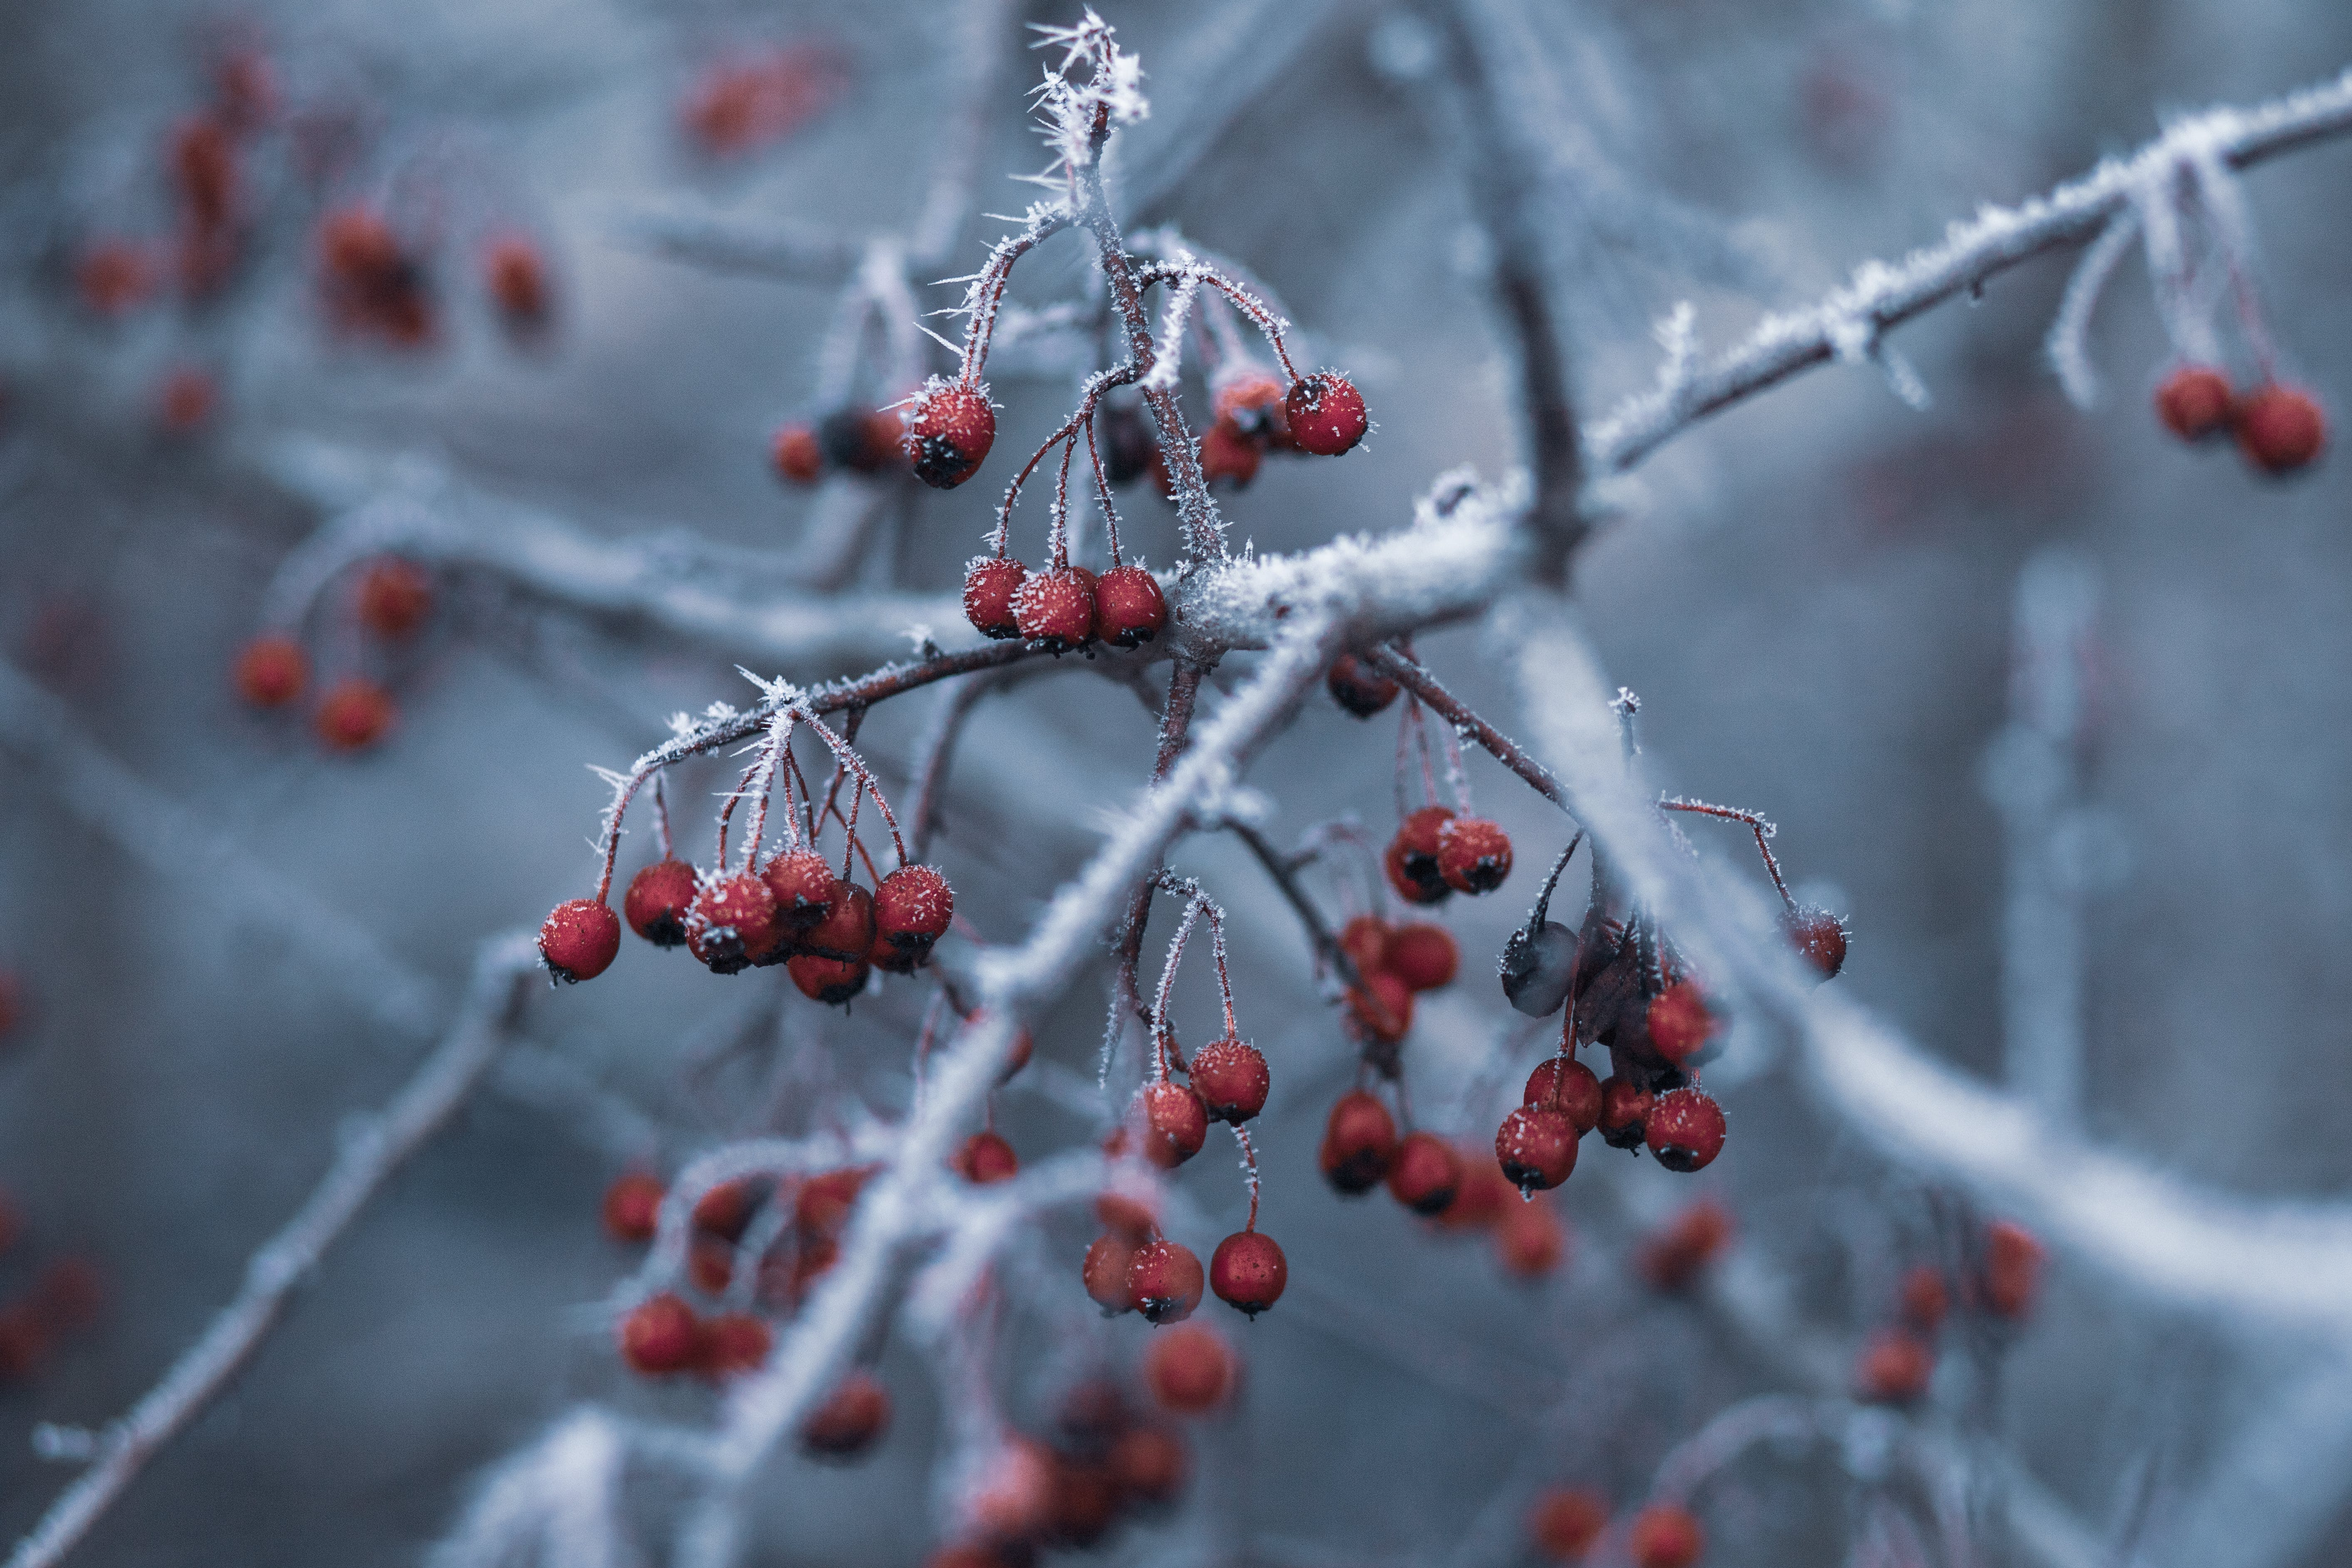 Selective Focus Photography of Red Fruits With Snow